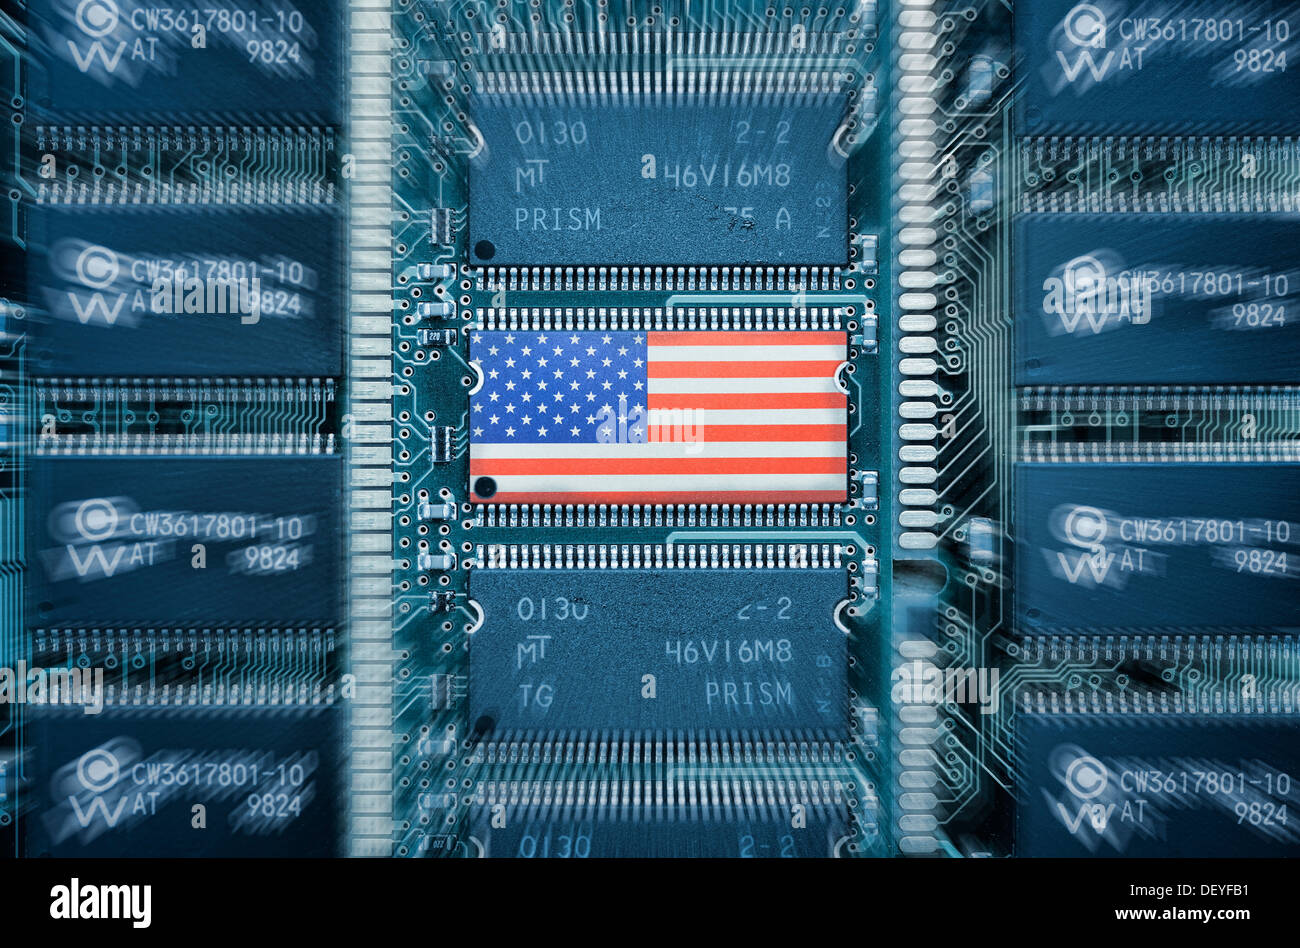 USA flag on computer platinum, prism Spaehprogramm, USA-Fahne auf Computerplatine, Prism Spähprogramm - Stock Image